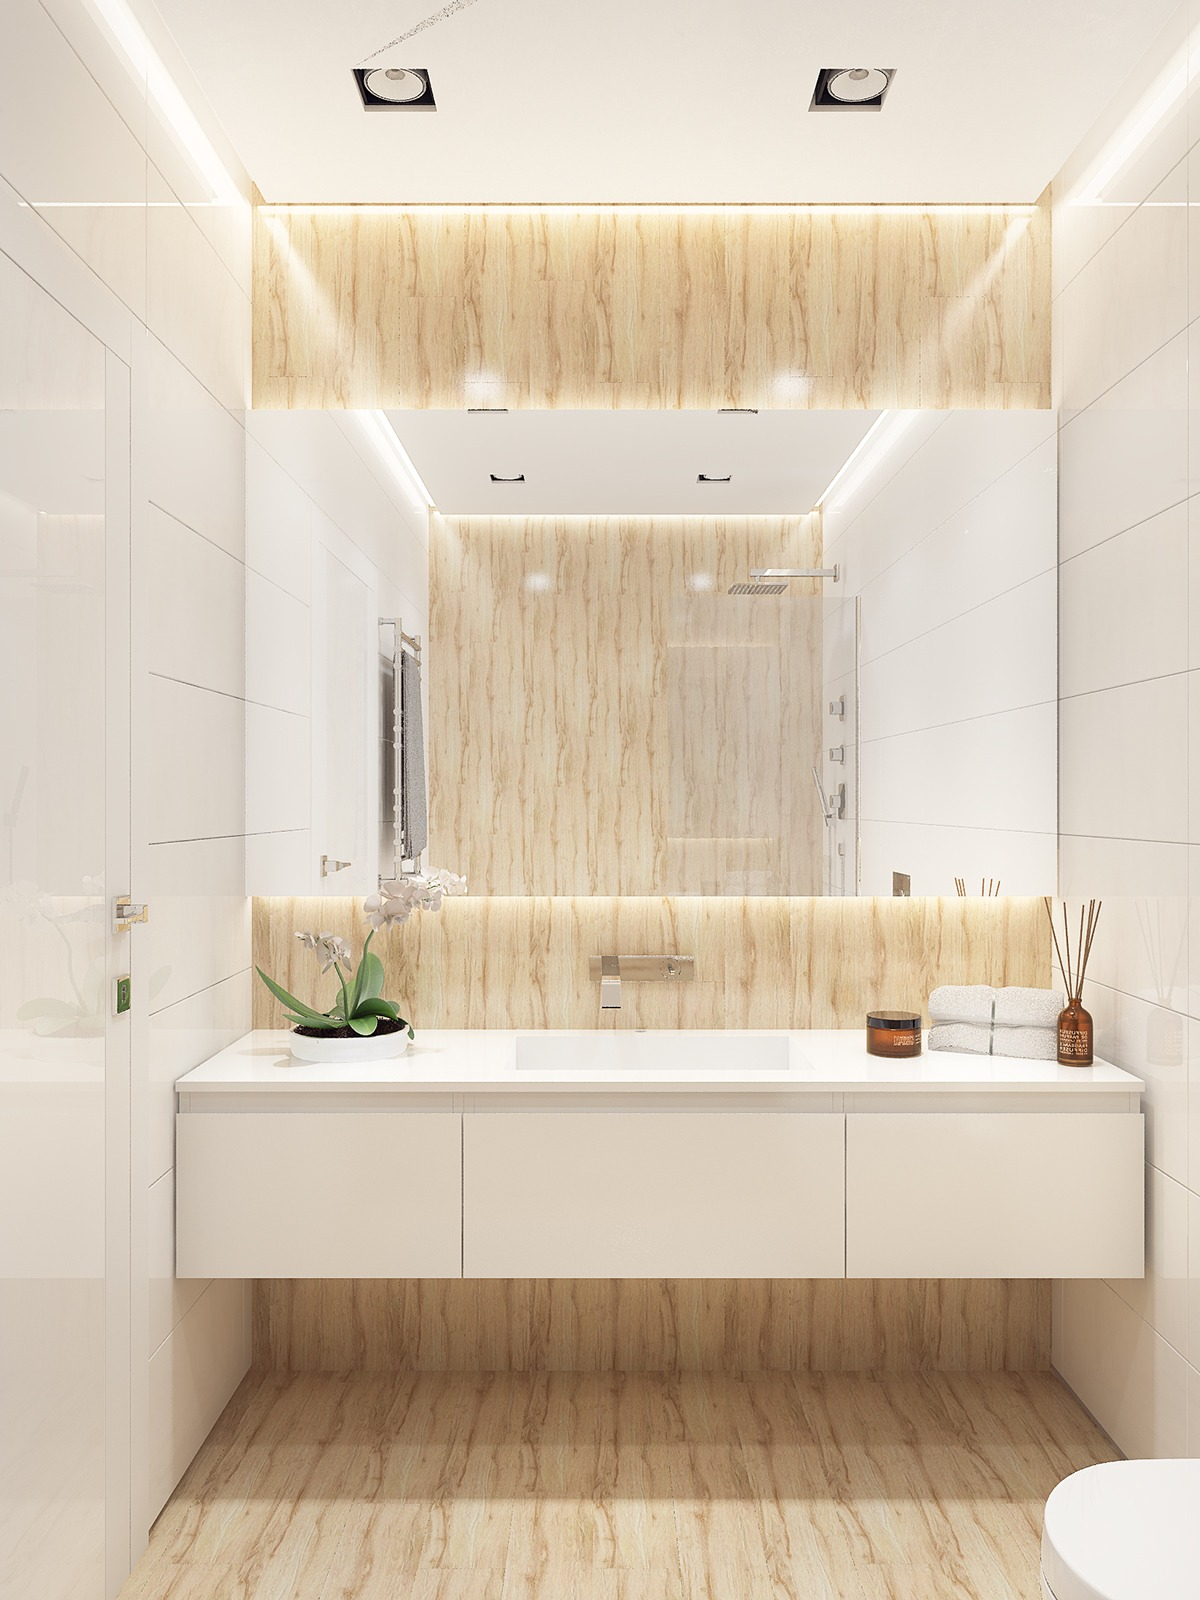 Similarly simple designs with a bright and cheerful tone Simple shower designs